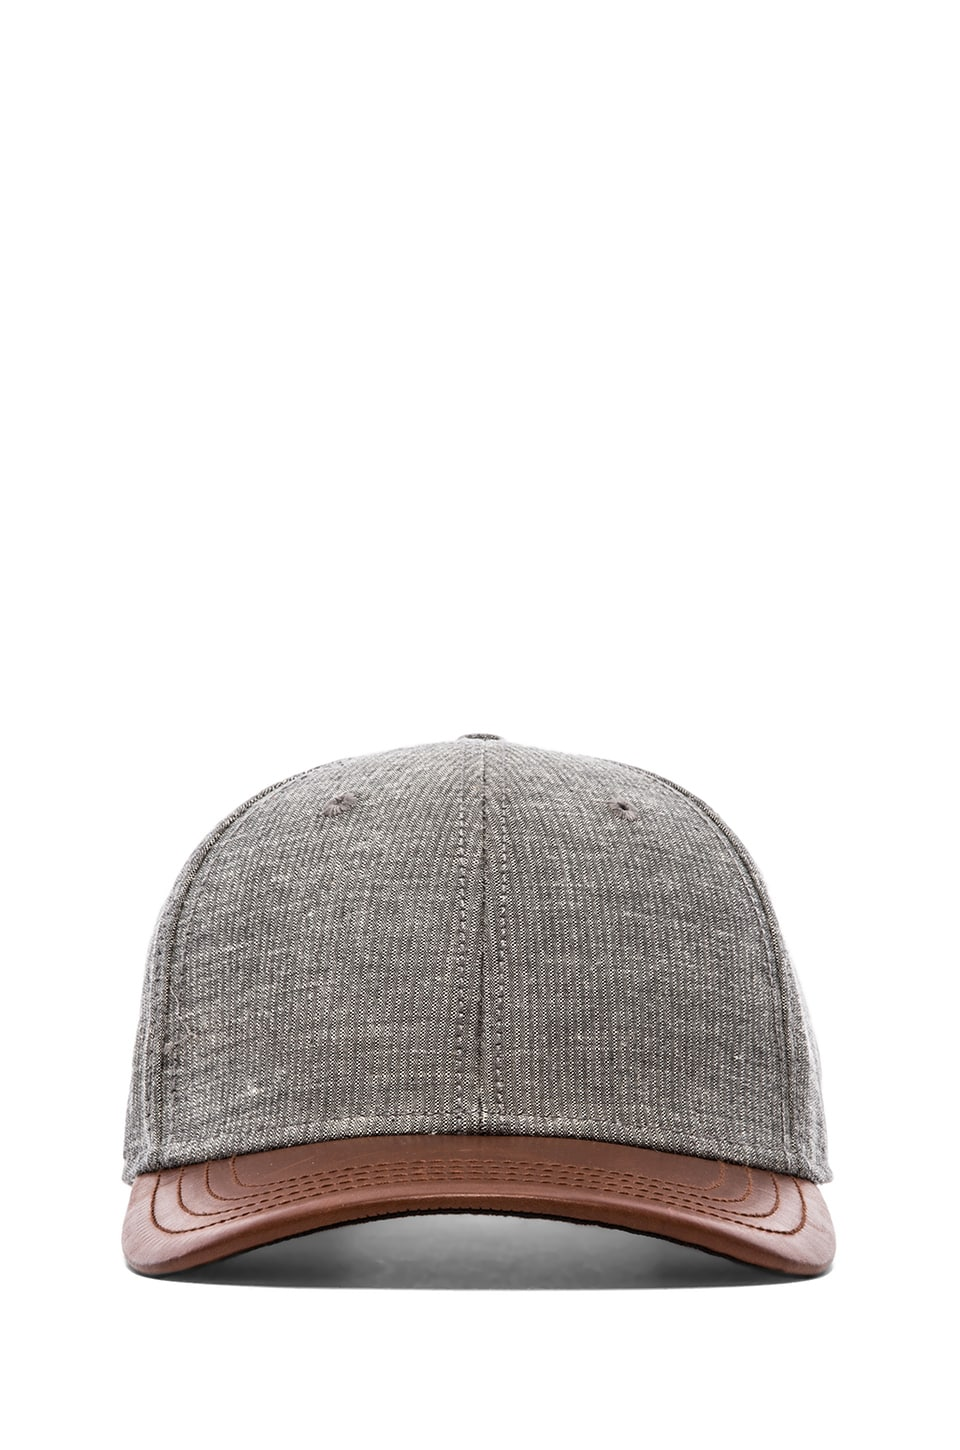 Rag & Bone Leather Brim Baseball Cap in Brown Multi